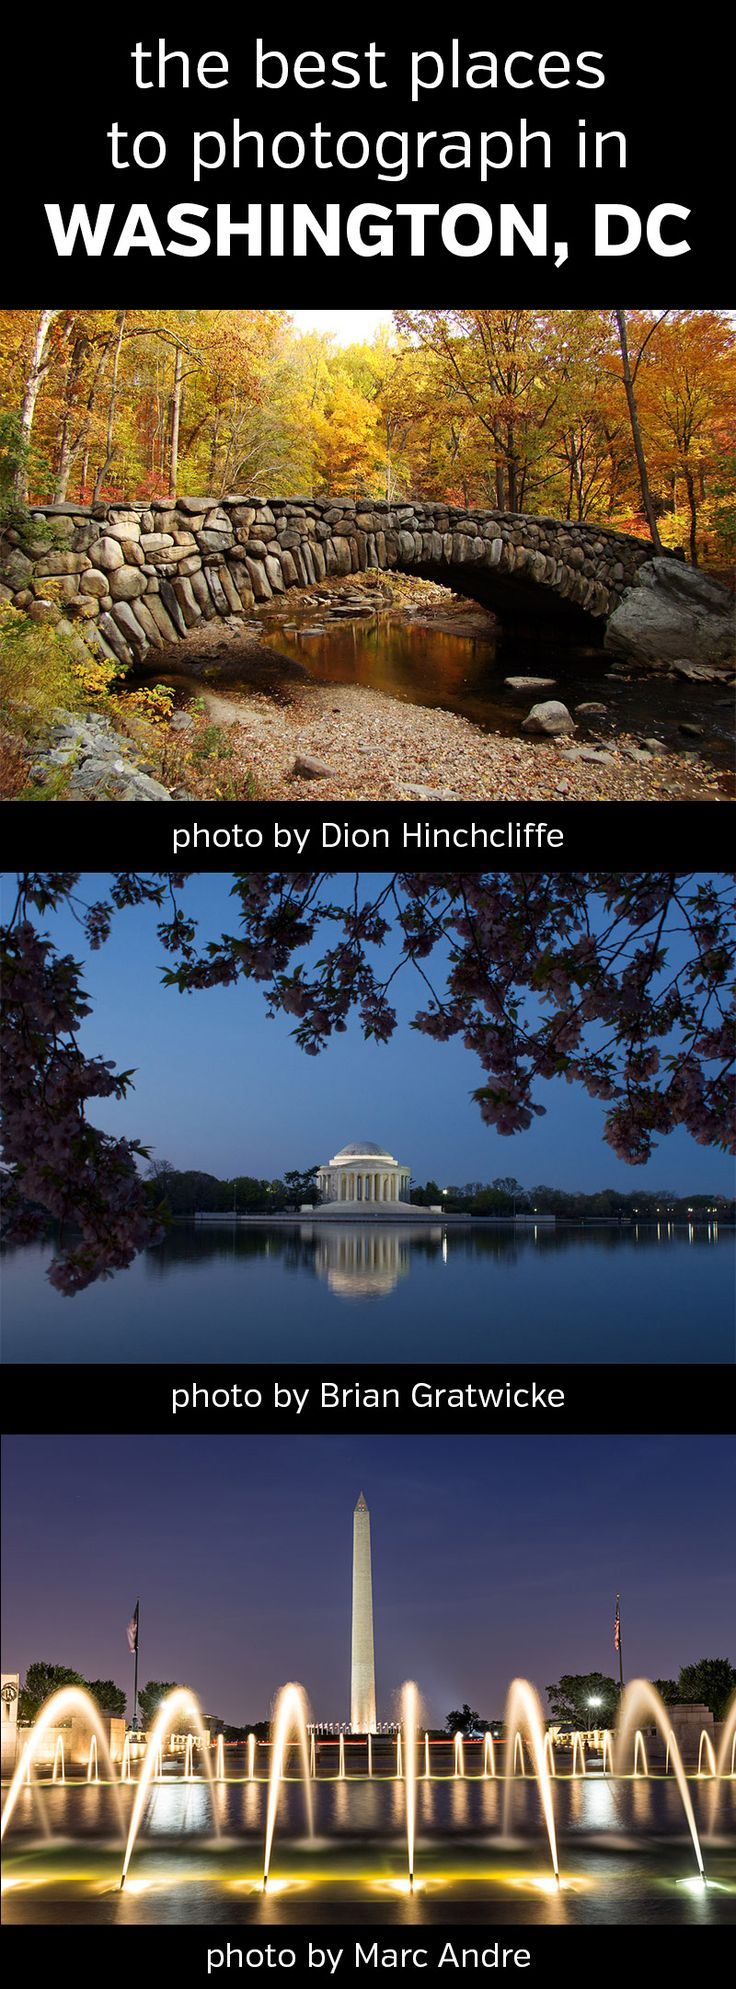 The Best Places to Photograph in Washington, District of Columbia (DC). Landscape, nature, photography, photos, travel, locations, destinations, planning, scouting, maps, Rock Creek Park, zoo, Jefferson Memorial, Tidal Basin, Washington Monument, Lincoln, Capitol Building, White House, National Arboretum, Dumbarton Oaks, #dc, #washingtondc, #photography, #landscapephotography